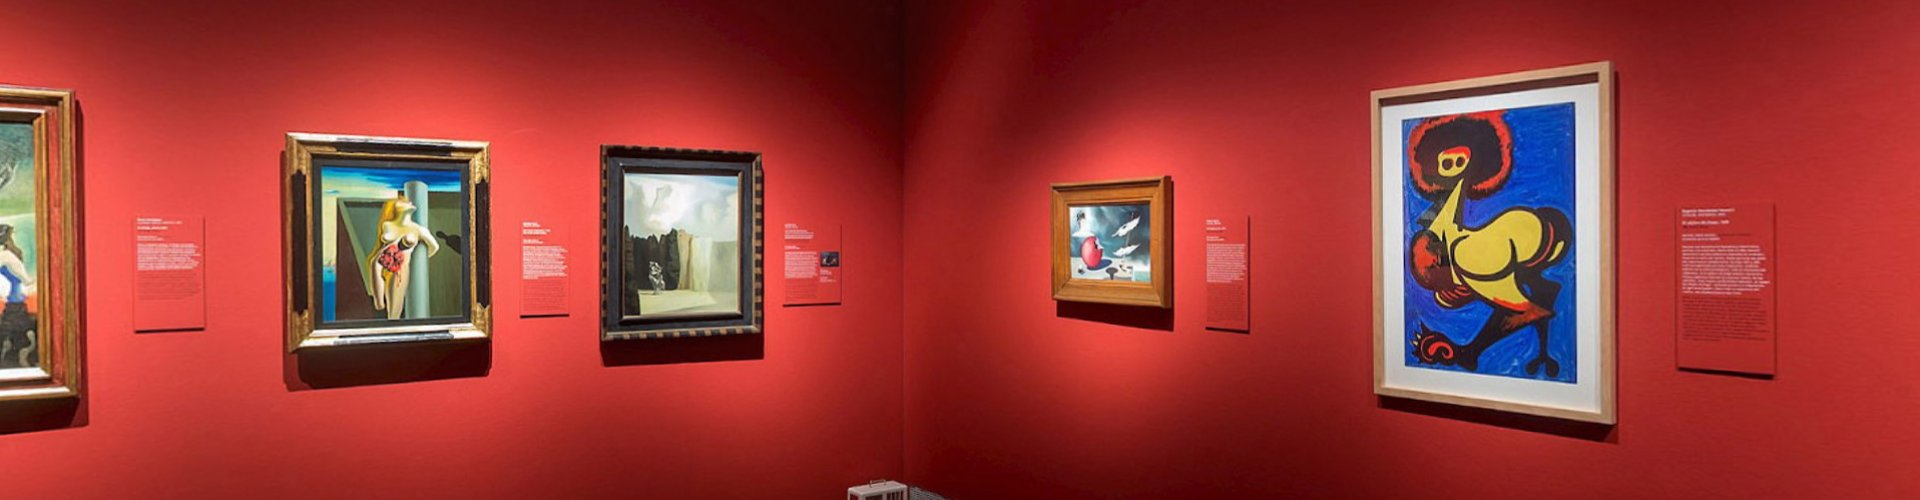 Exposición - Dalí and Surrealism in the ABANCA Art Collection